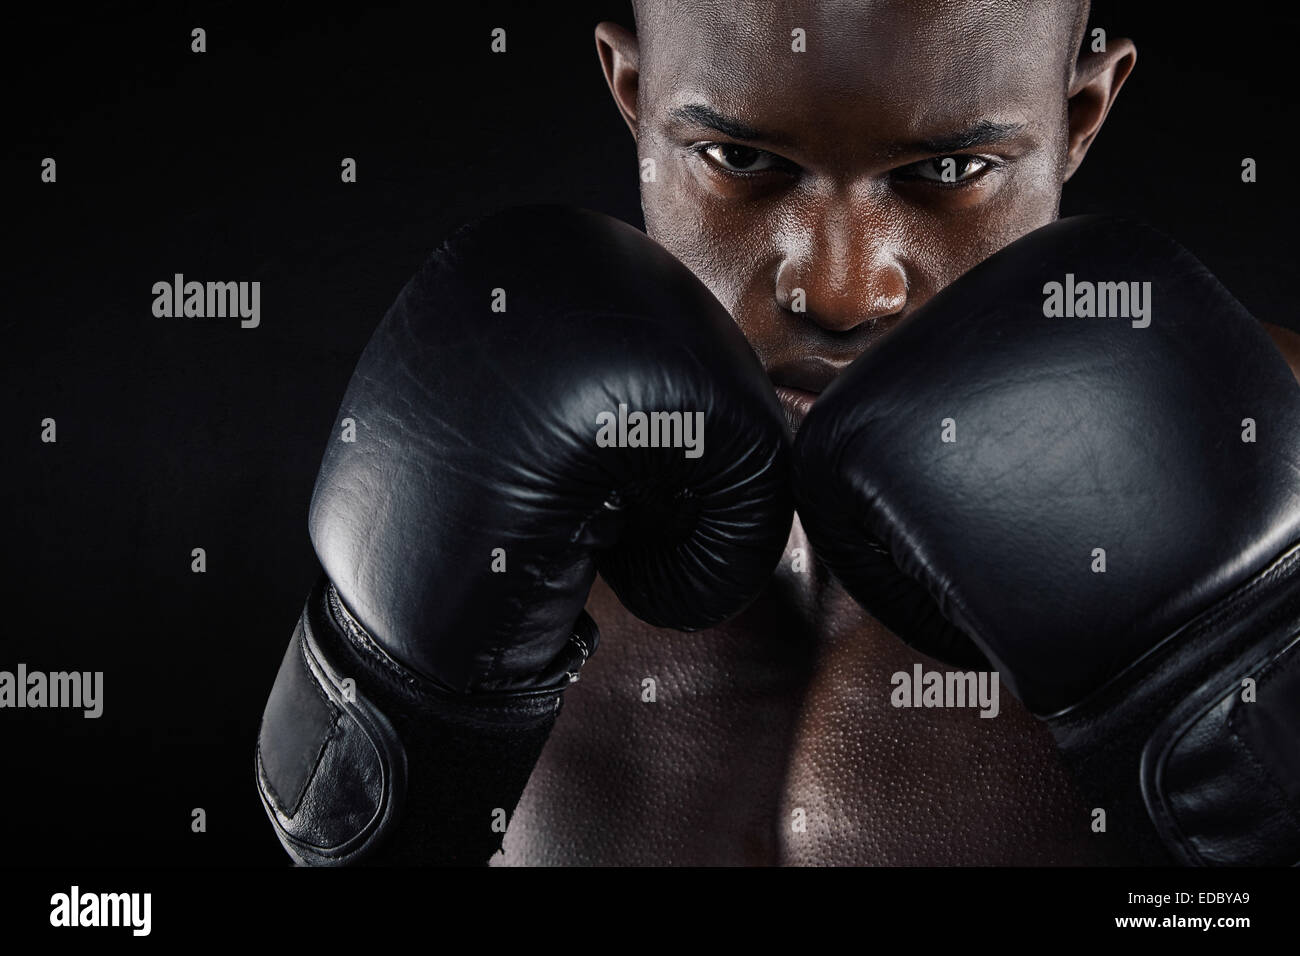 Portrait of a young male boxer in a fighting stance on black background. Young man doing boxing exercise. - Stock Image